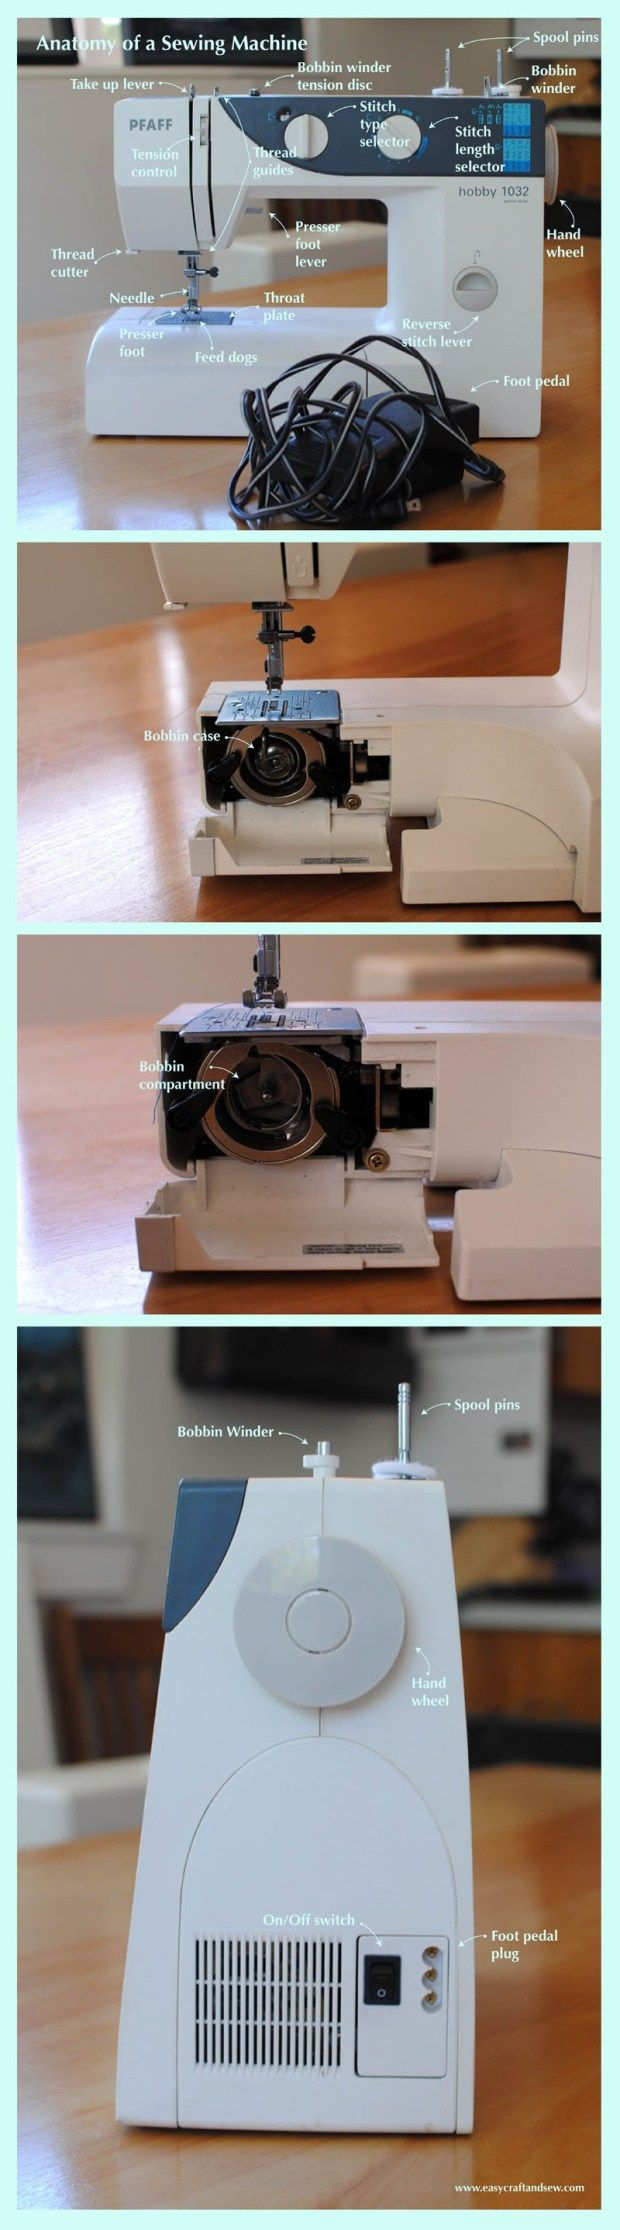 The anatomy of a sewing machine.